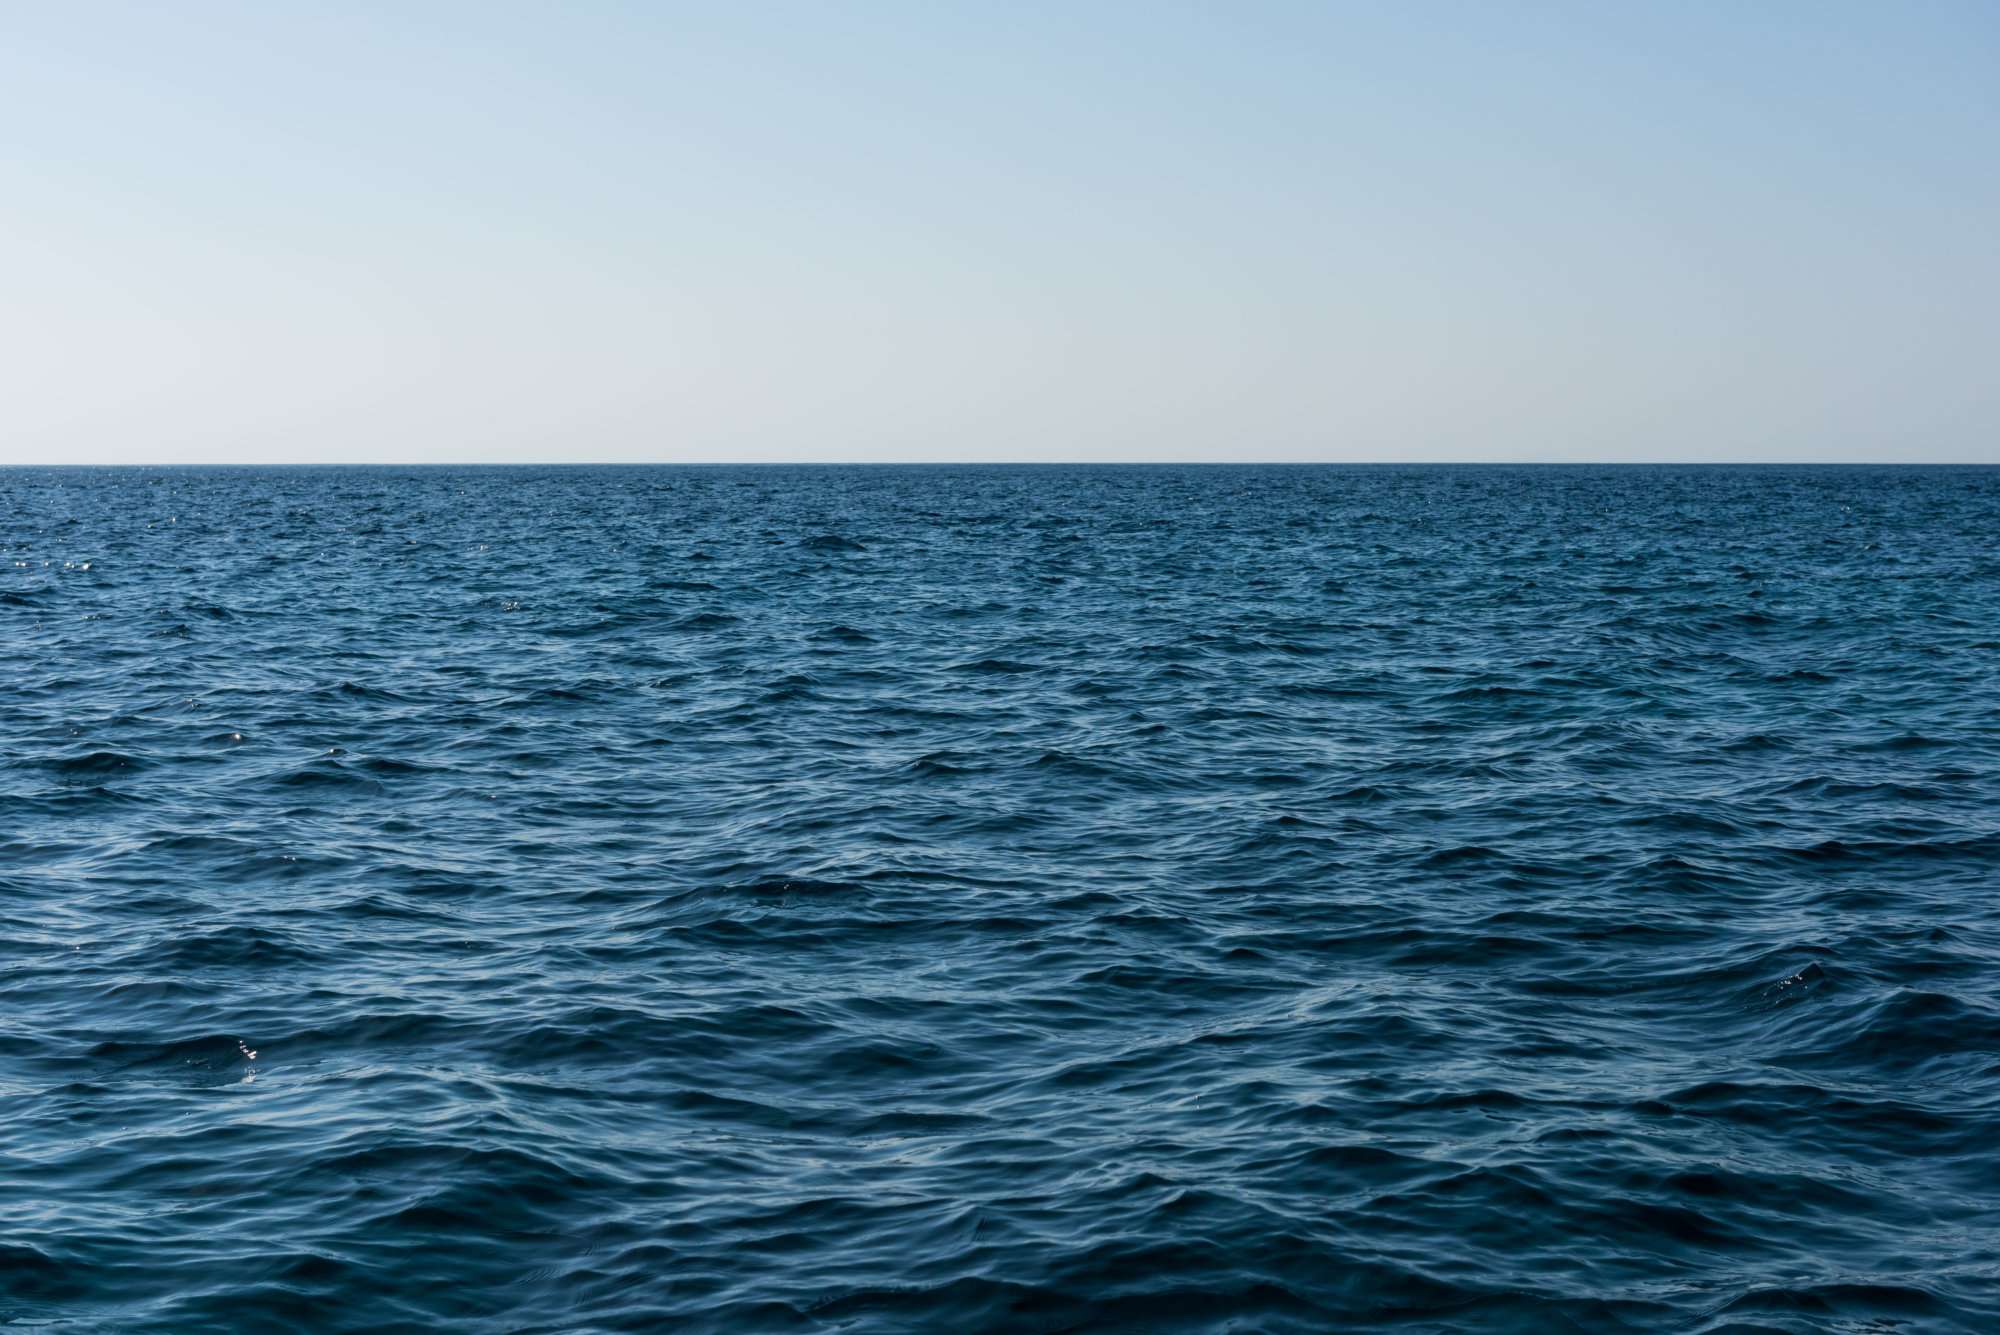 Fishing crew member charged with murder in attack at sea ...